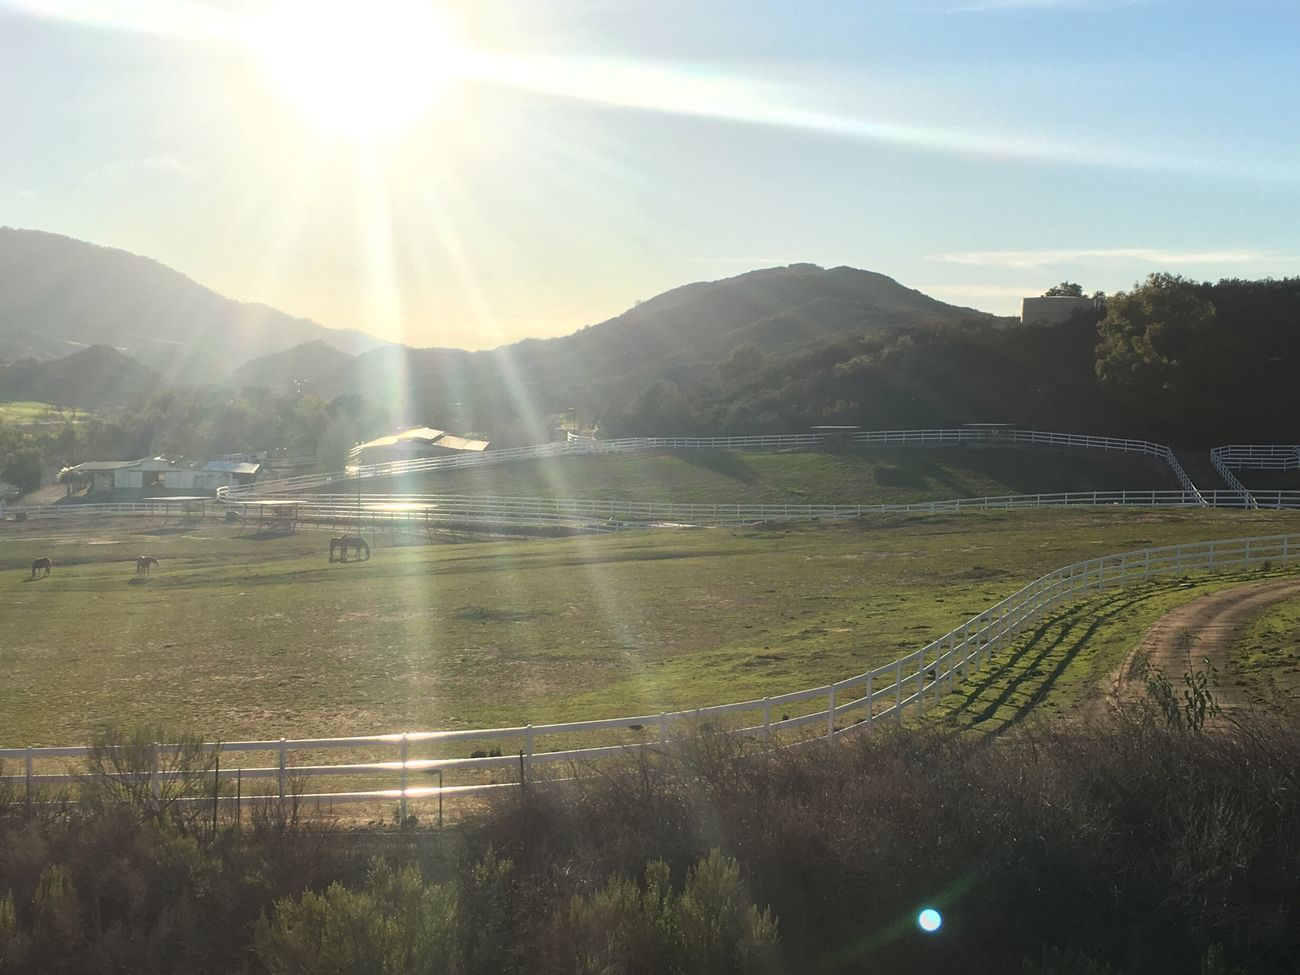 Beauty In Nature Lens Flare Sunlight Nature Sunbeam Mountain Sun Landscape Tranquility Scenics Tree Outdoors Mountain Range No People Day Horse Farm Farm Life Pasture Idyllic Countryside Country Life Country Road Picket Fence Stable